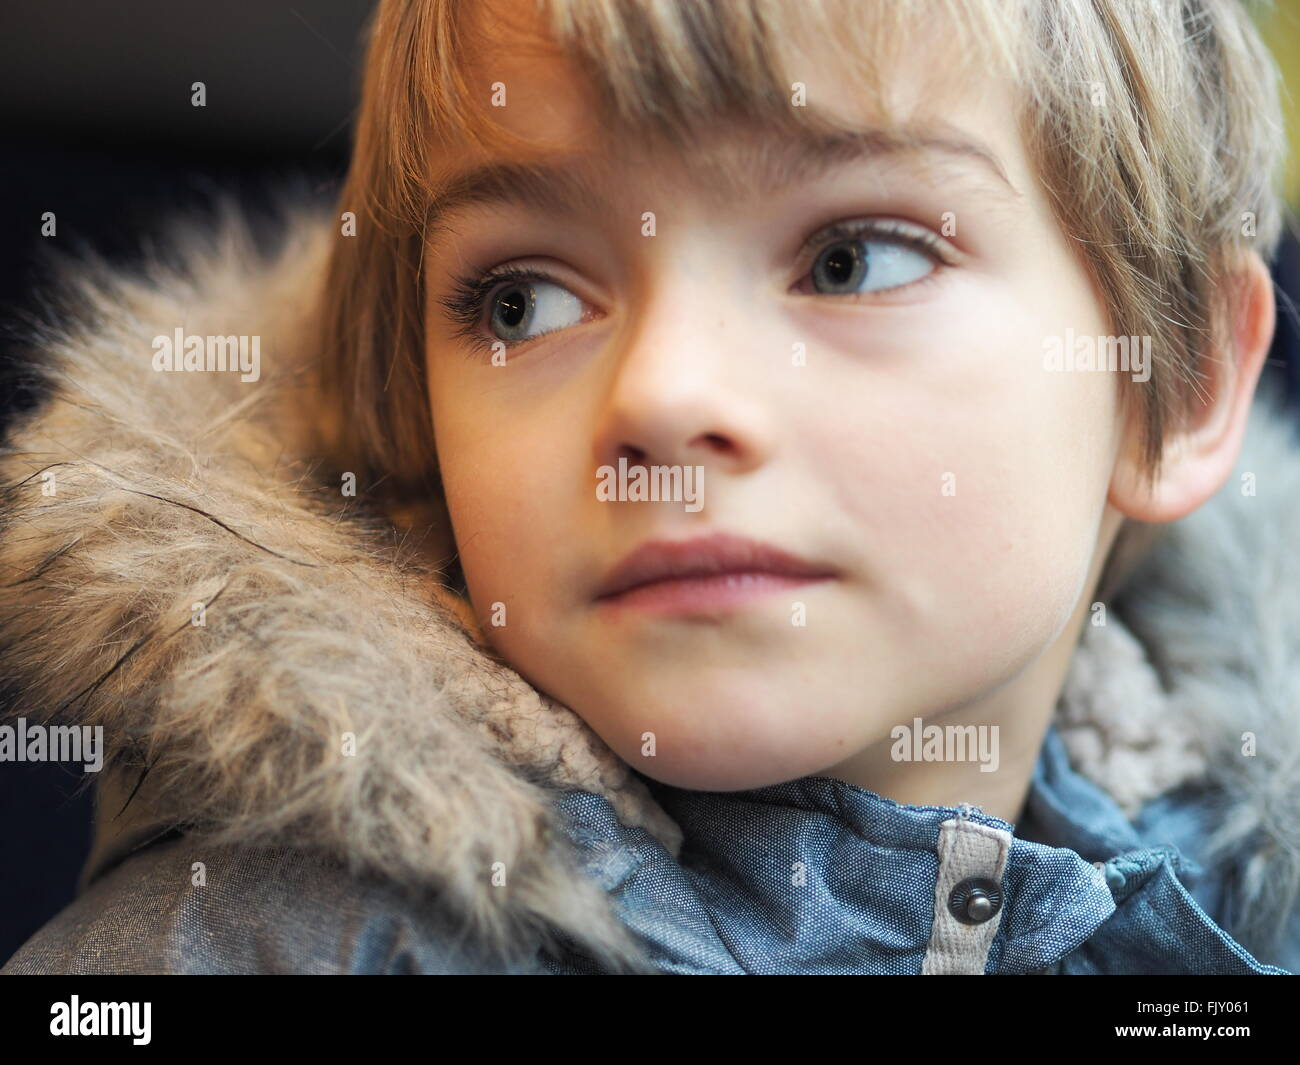 Close-Up Of Boy Wearing Fur Jacket In Car - Stock Image